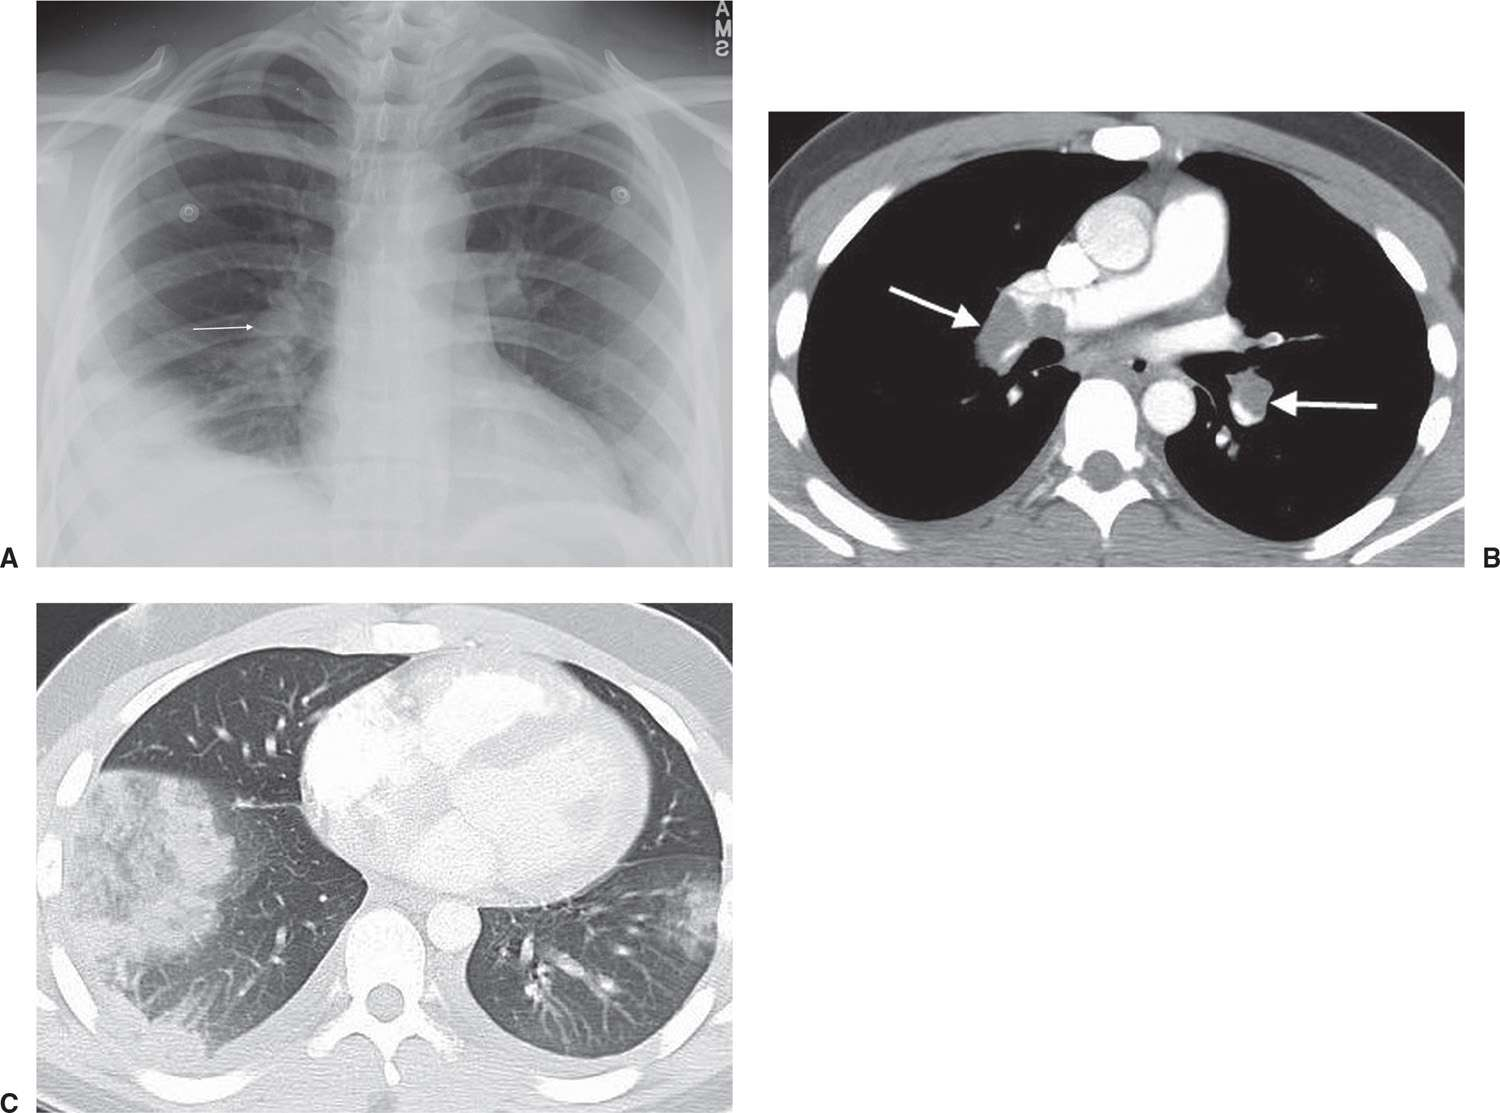 2.17 u2022 Knuckle sign. A PA chest radiograph shows an enlarged right pulmonary artery (arrow) and abnormal opacity in the right lower lobe.  sc 1 st  Plastic Surgery Key & Signs and Patterns of Lung Disease | Radiology Key